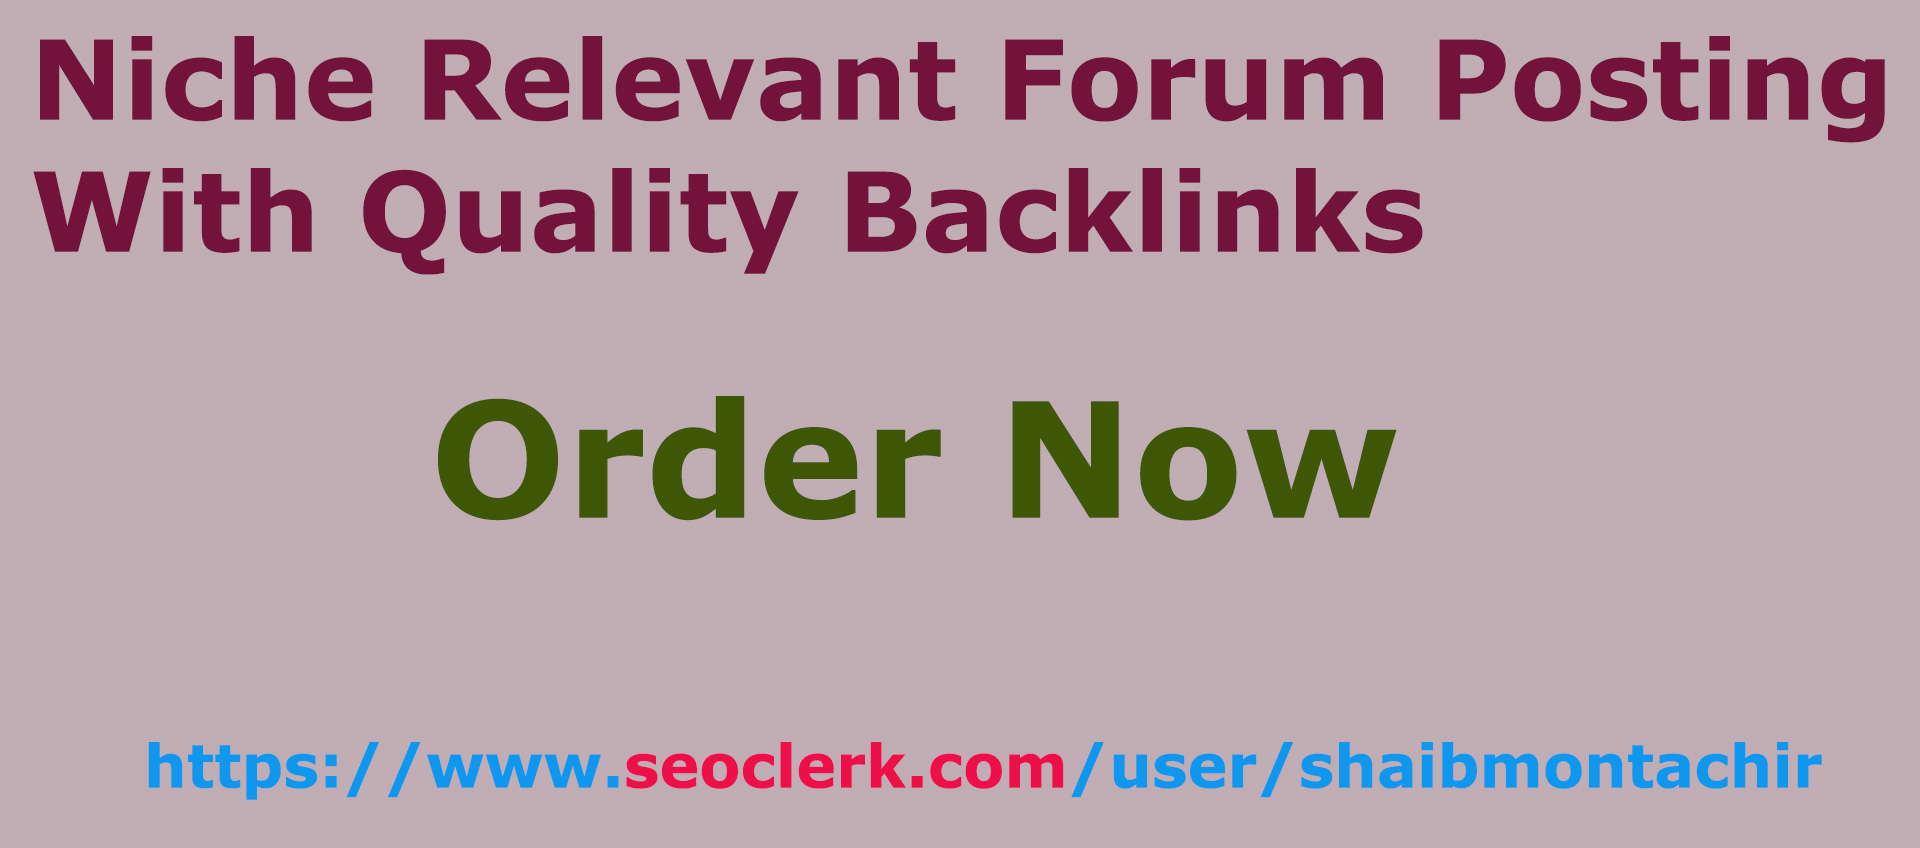 30 Niche relevant forum posting comments with quality backlinks